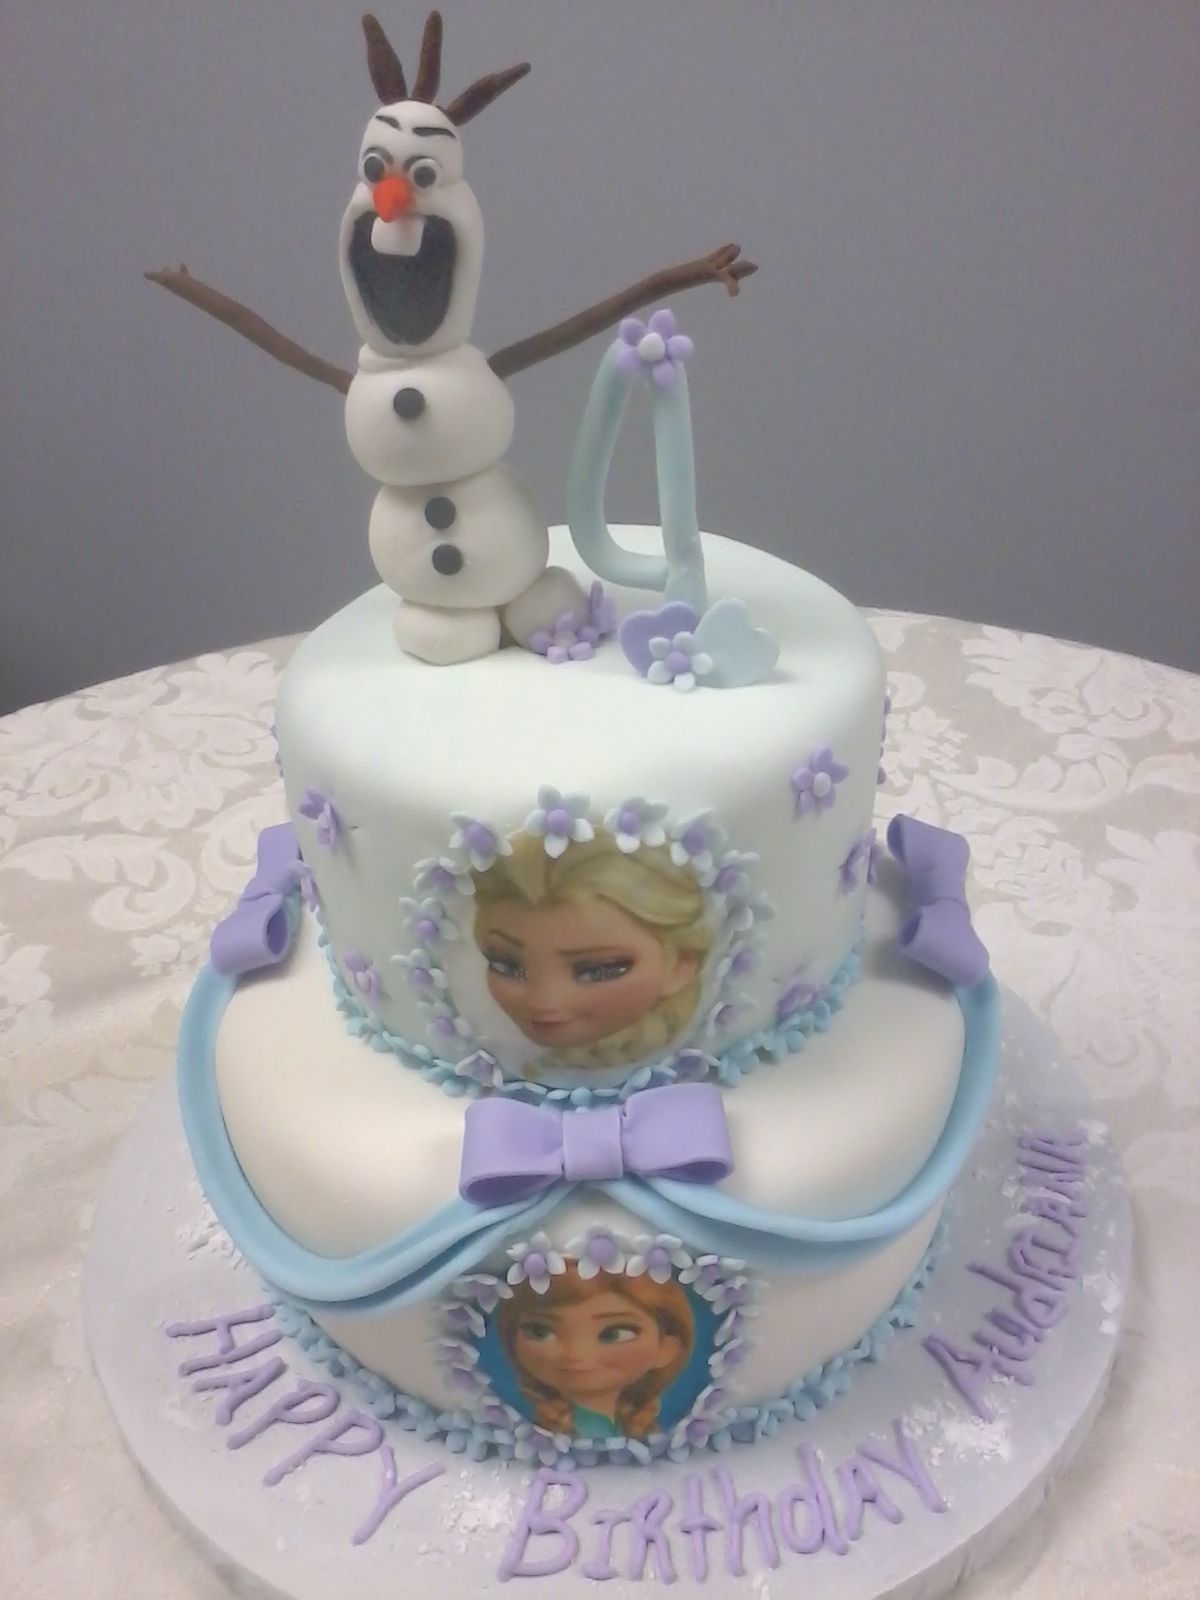 D D Cake Designs Jacksonville Florida Two Tiered Marshmallow